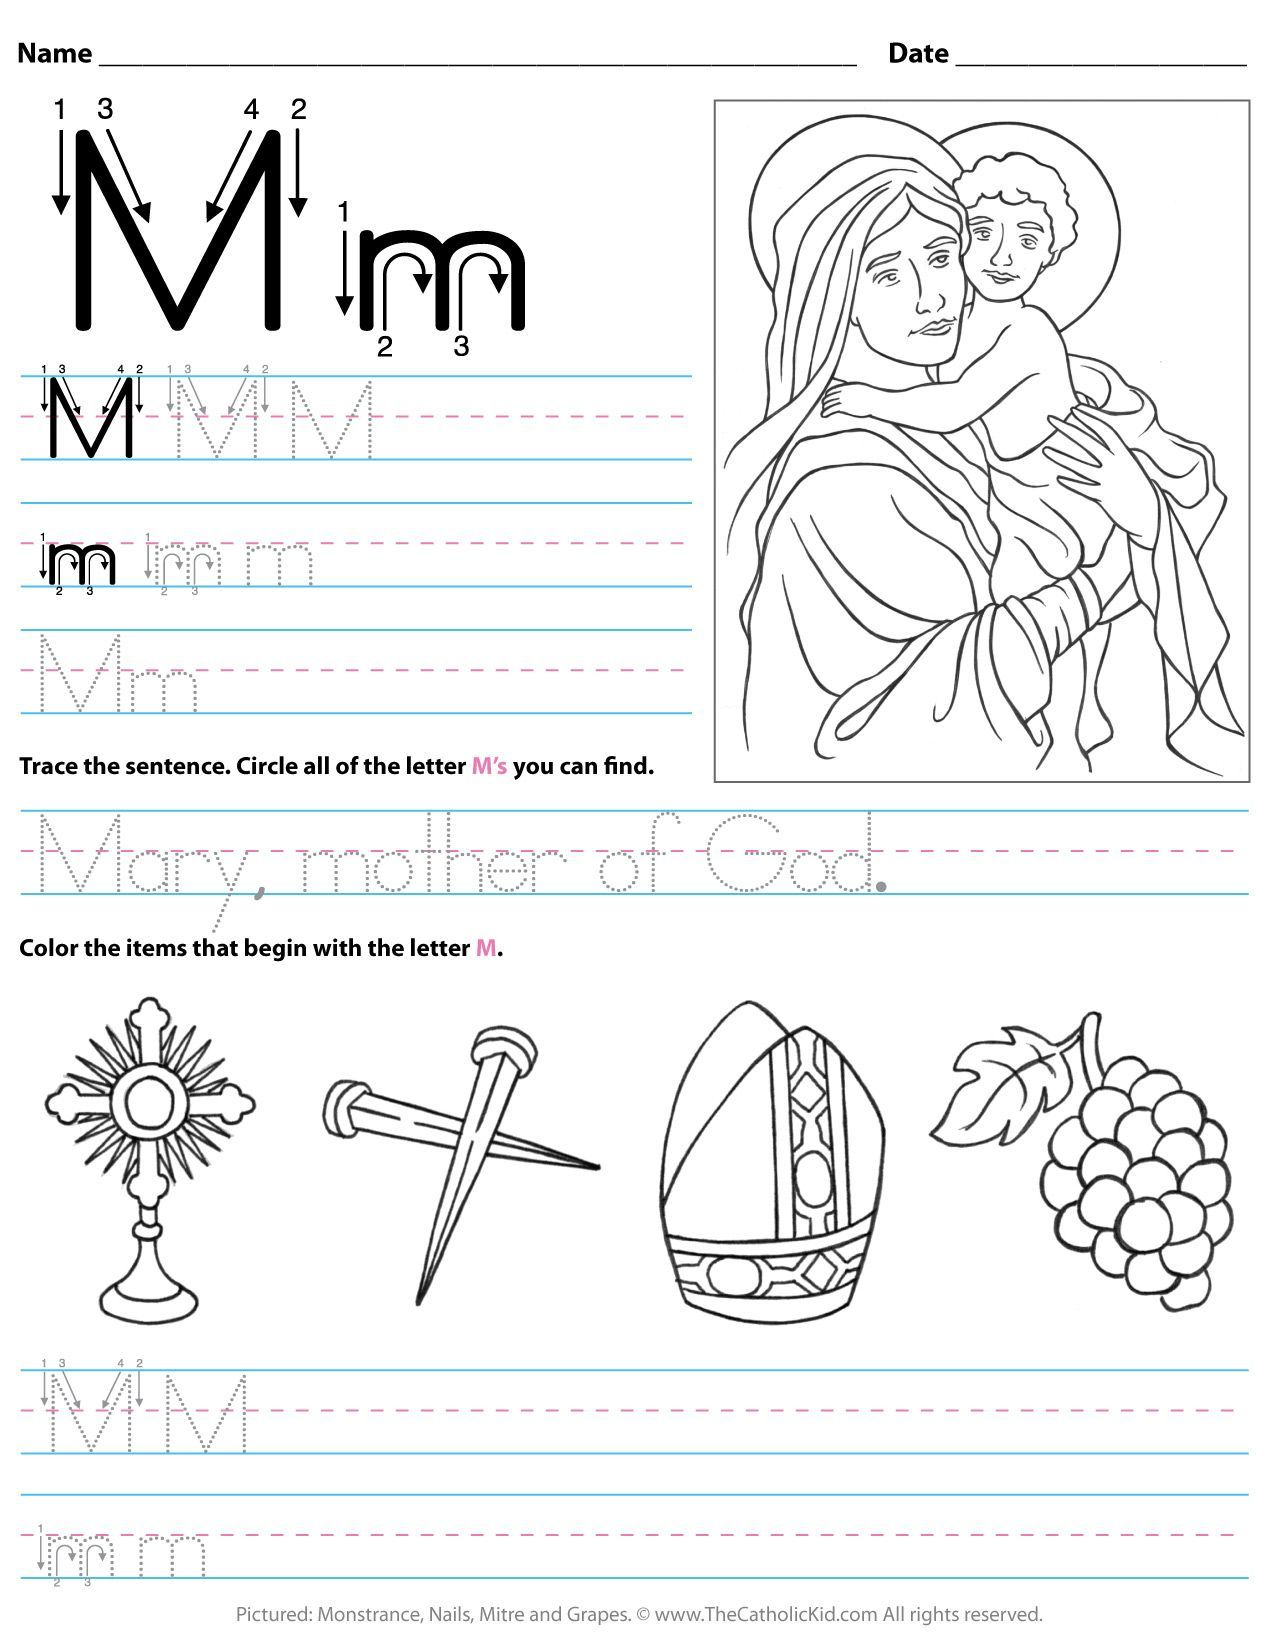 Catholic Alphabet Coloring Pages In